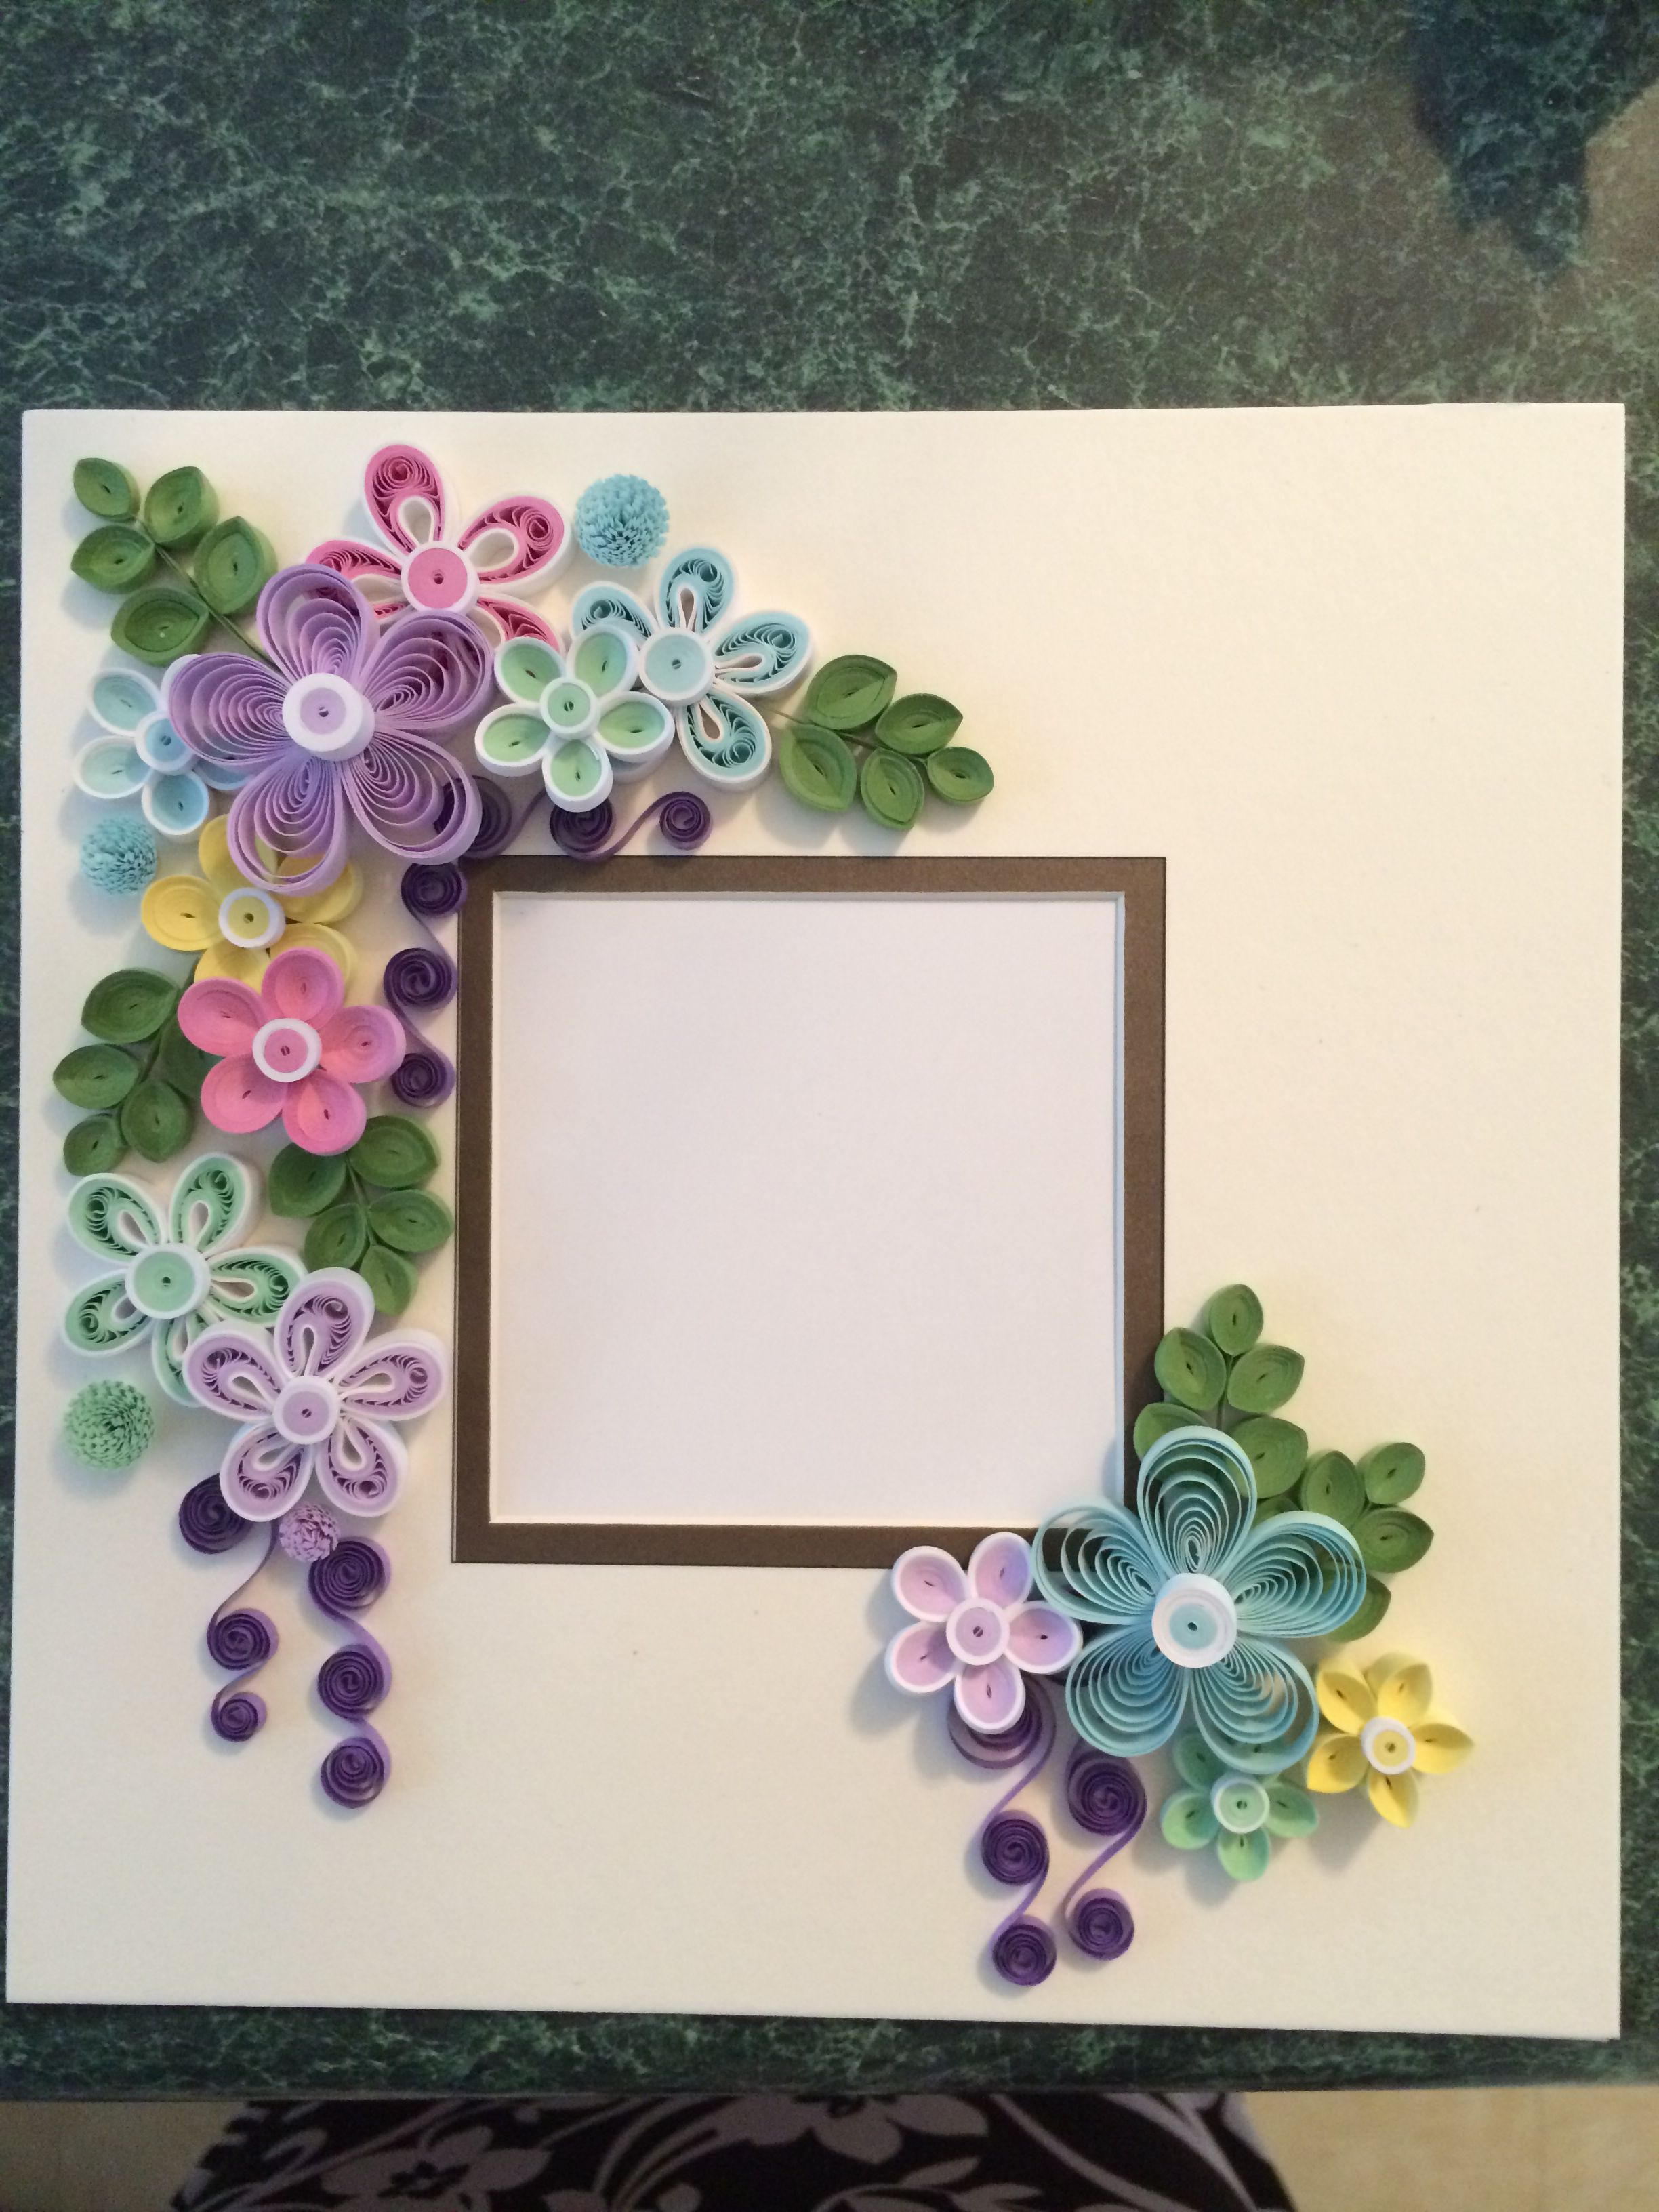 Calendar Wallpaper Quilling : Quilled frame for shadow box by ginny huff my